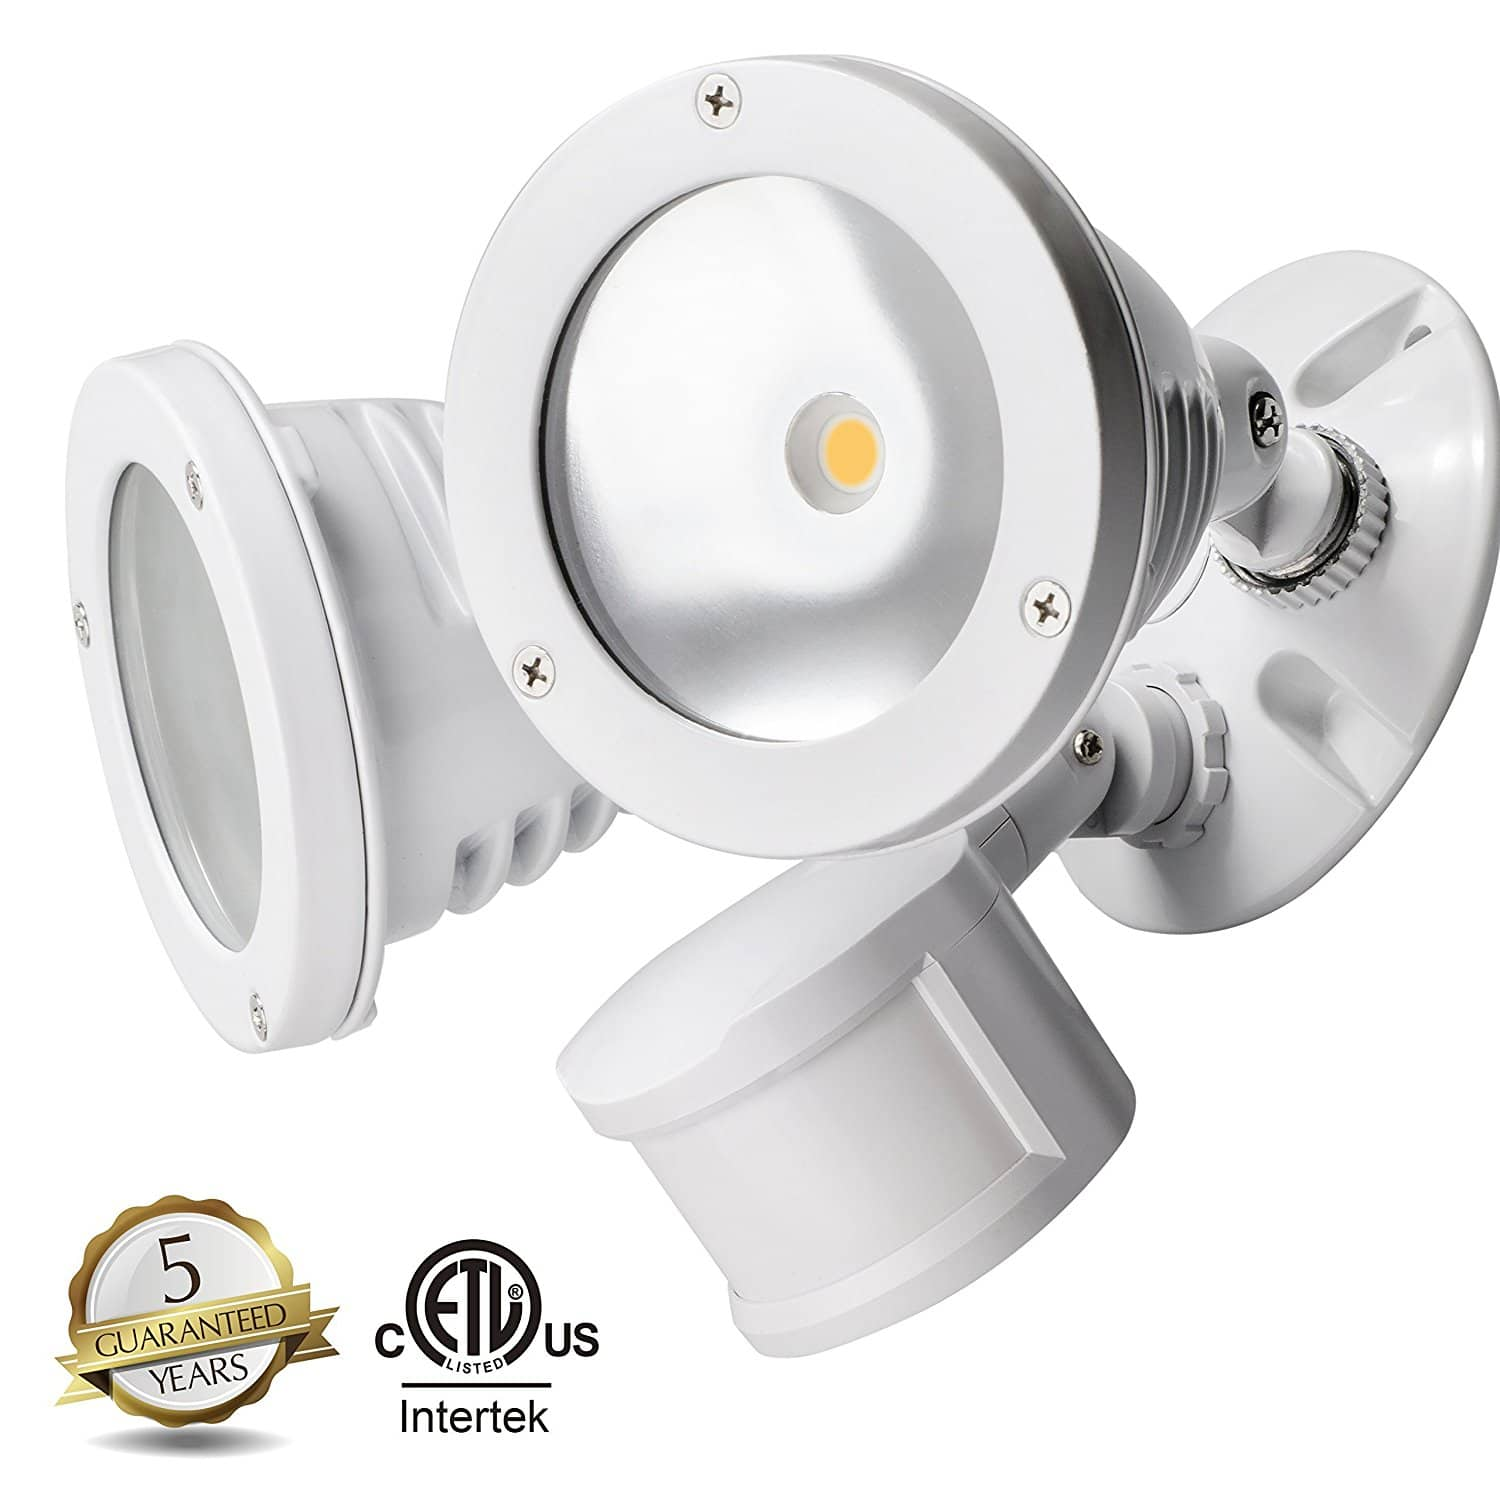 TOPELE LED Security Motion Sensor Flood Light, Super Bright 2200LM Aluminum Outdoor Floodlight, 24W (150W Equivalent),4000k daylight, Waterproof IP65 $41.29